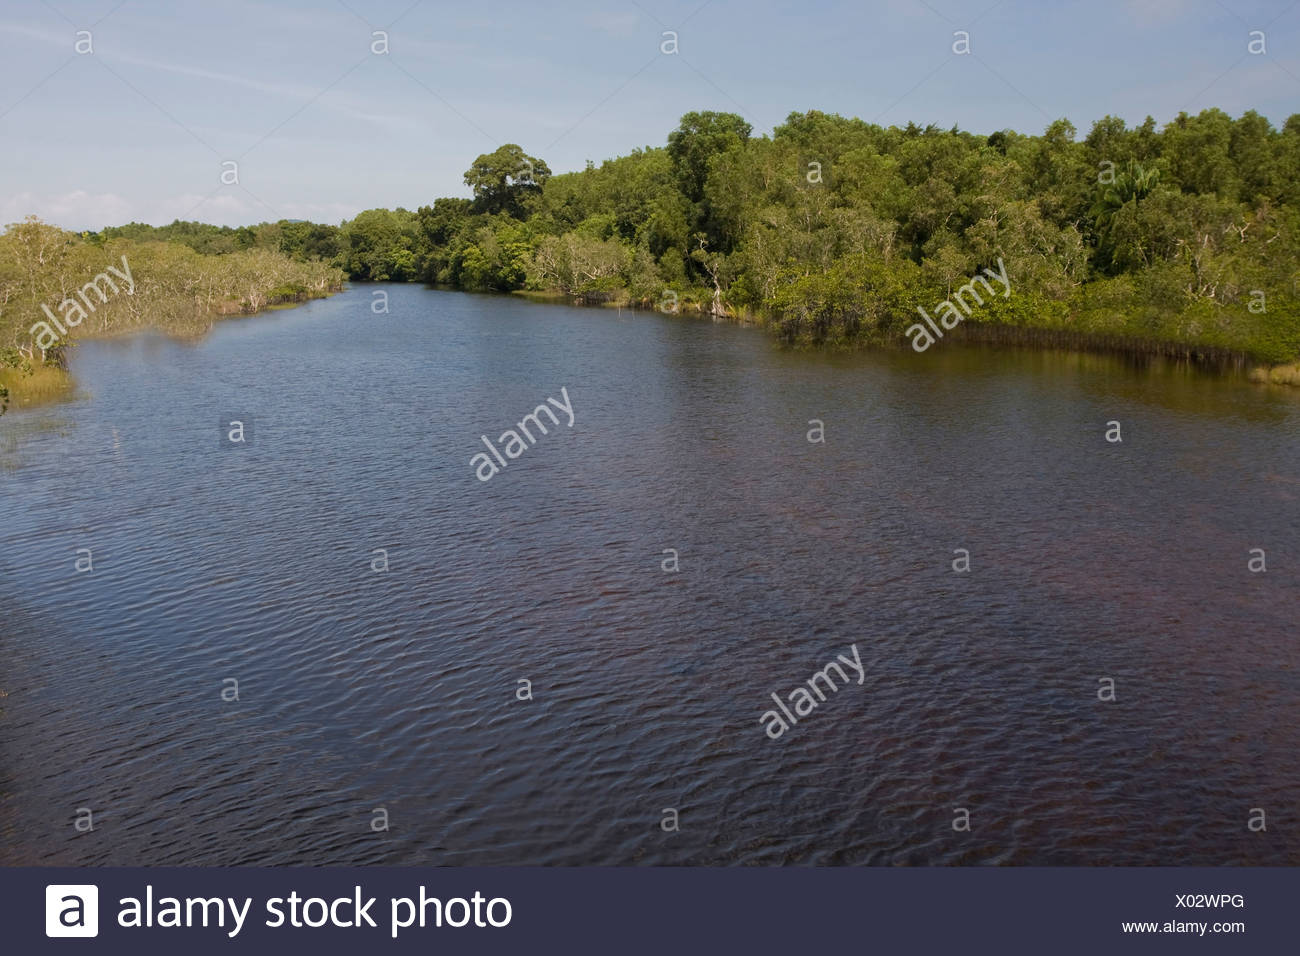 Asia, Dong, outside, Duong, river, island, isle, Phu, Quoc Quok, South-East Asia, Vietnam, Vietnamese, water, Cua Can, Stock Photo